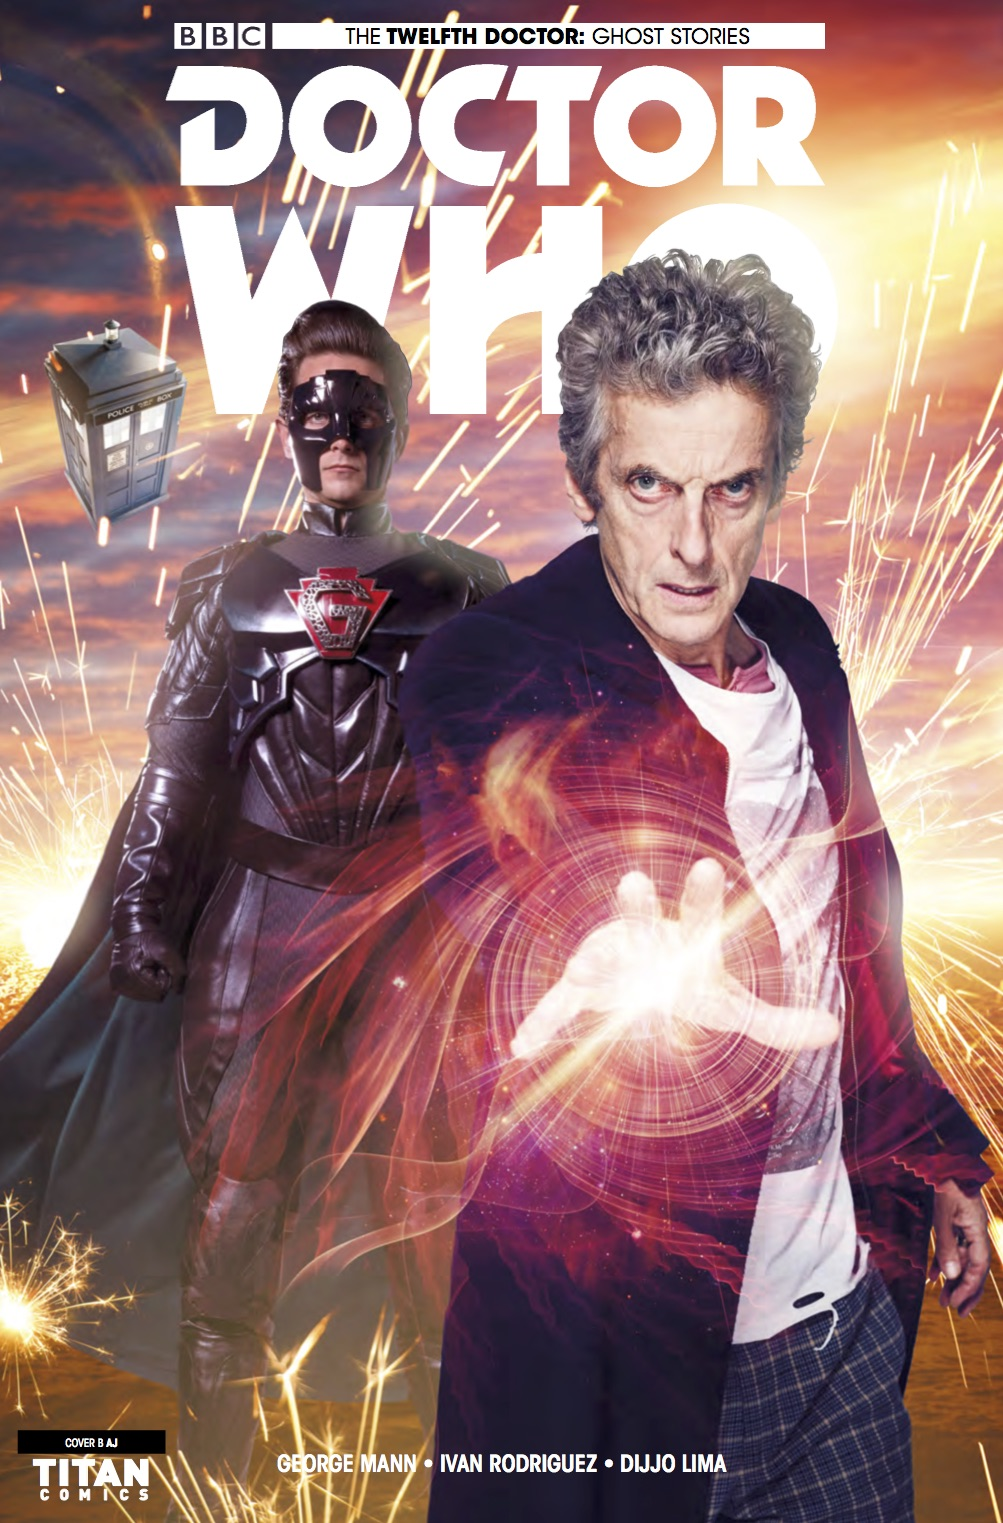 TITAN COMICS - DOCTOR WHO: GHOST STORIES #1 (OF 4) COVER B: Photo variant - Will Brooks